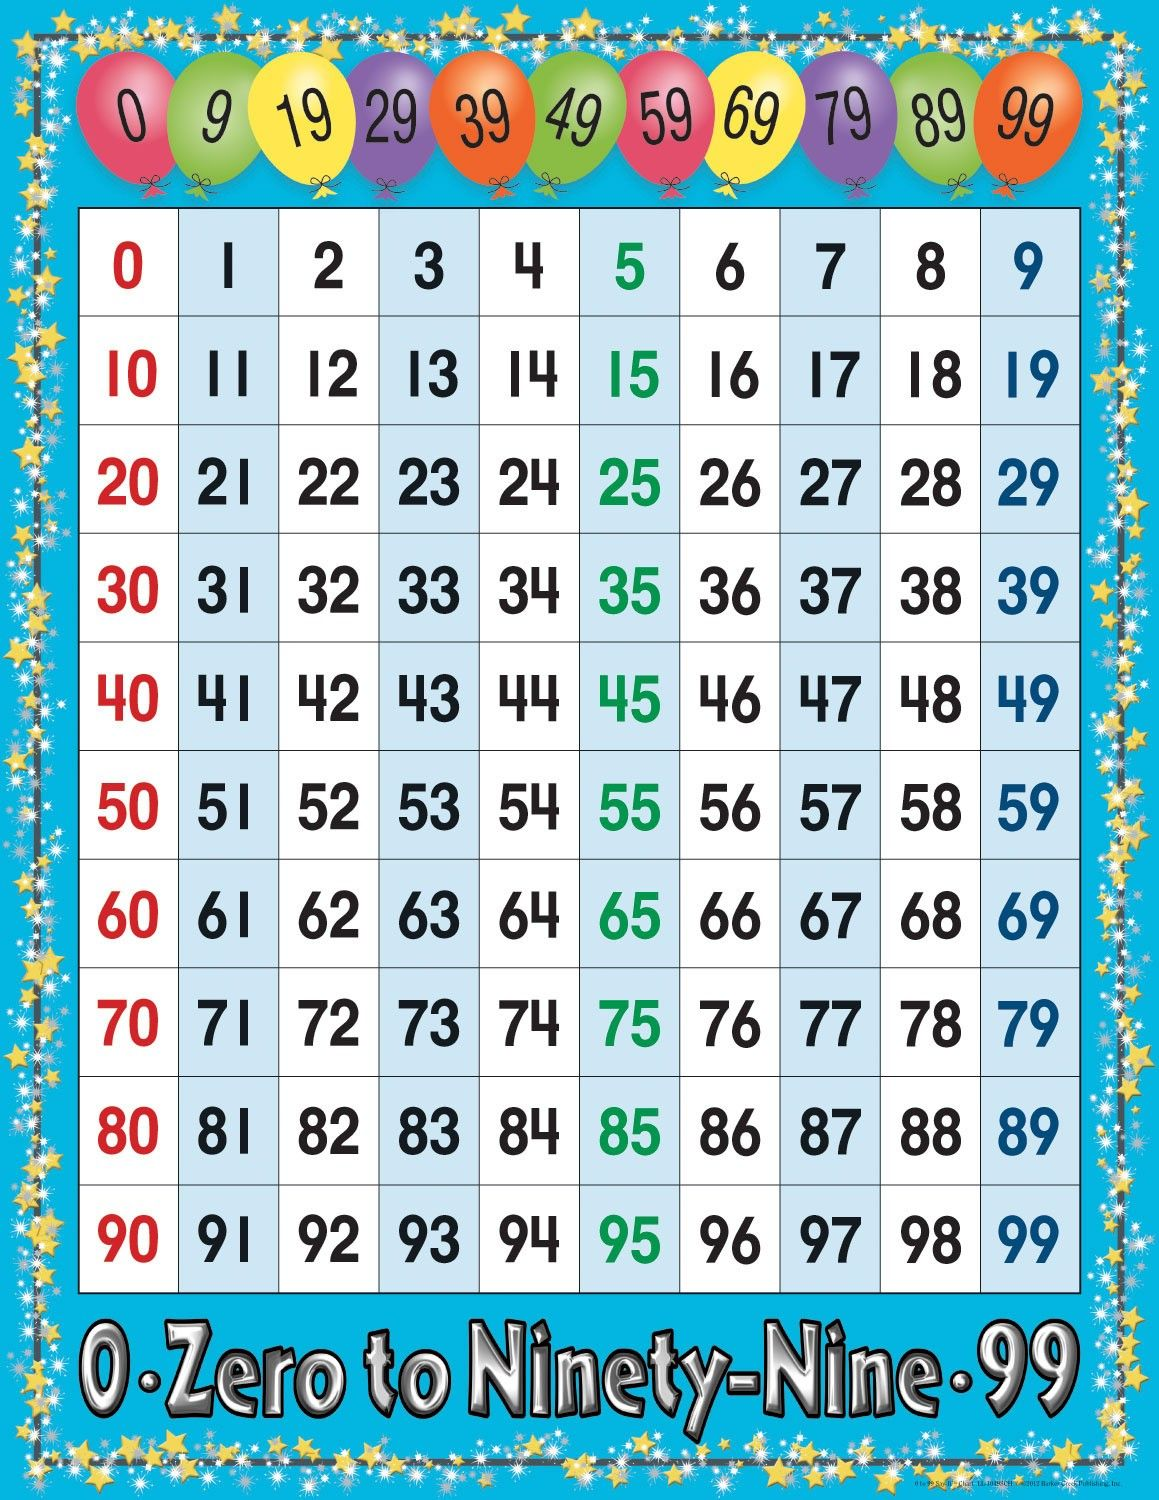 Worksheet 1-100 Number Chart number chart numbers 1 100 calloway house 0 99 pinterest house